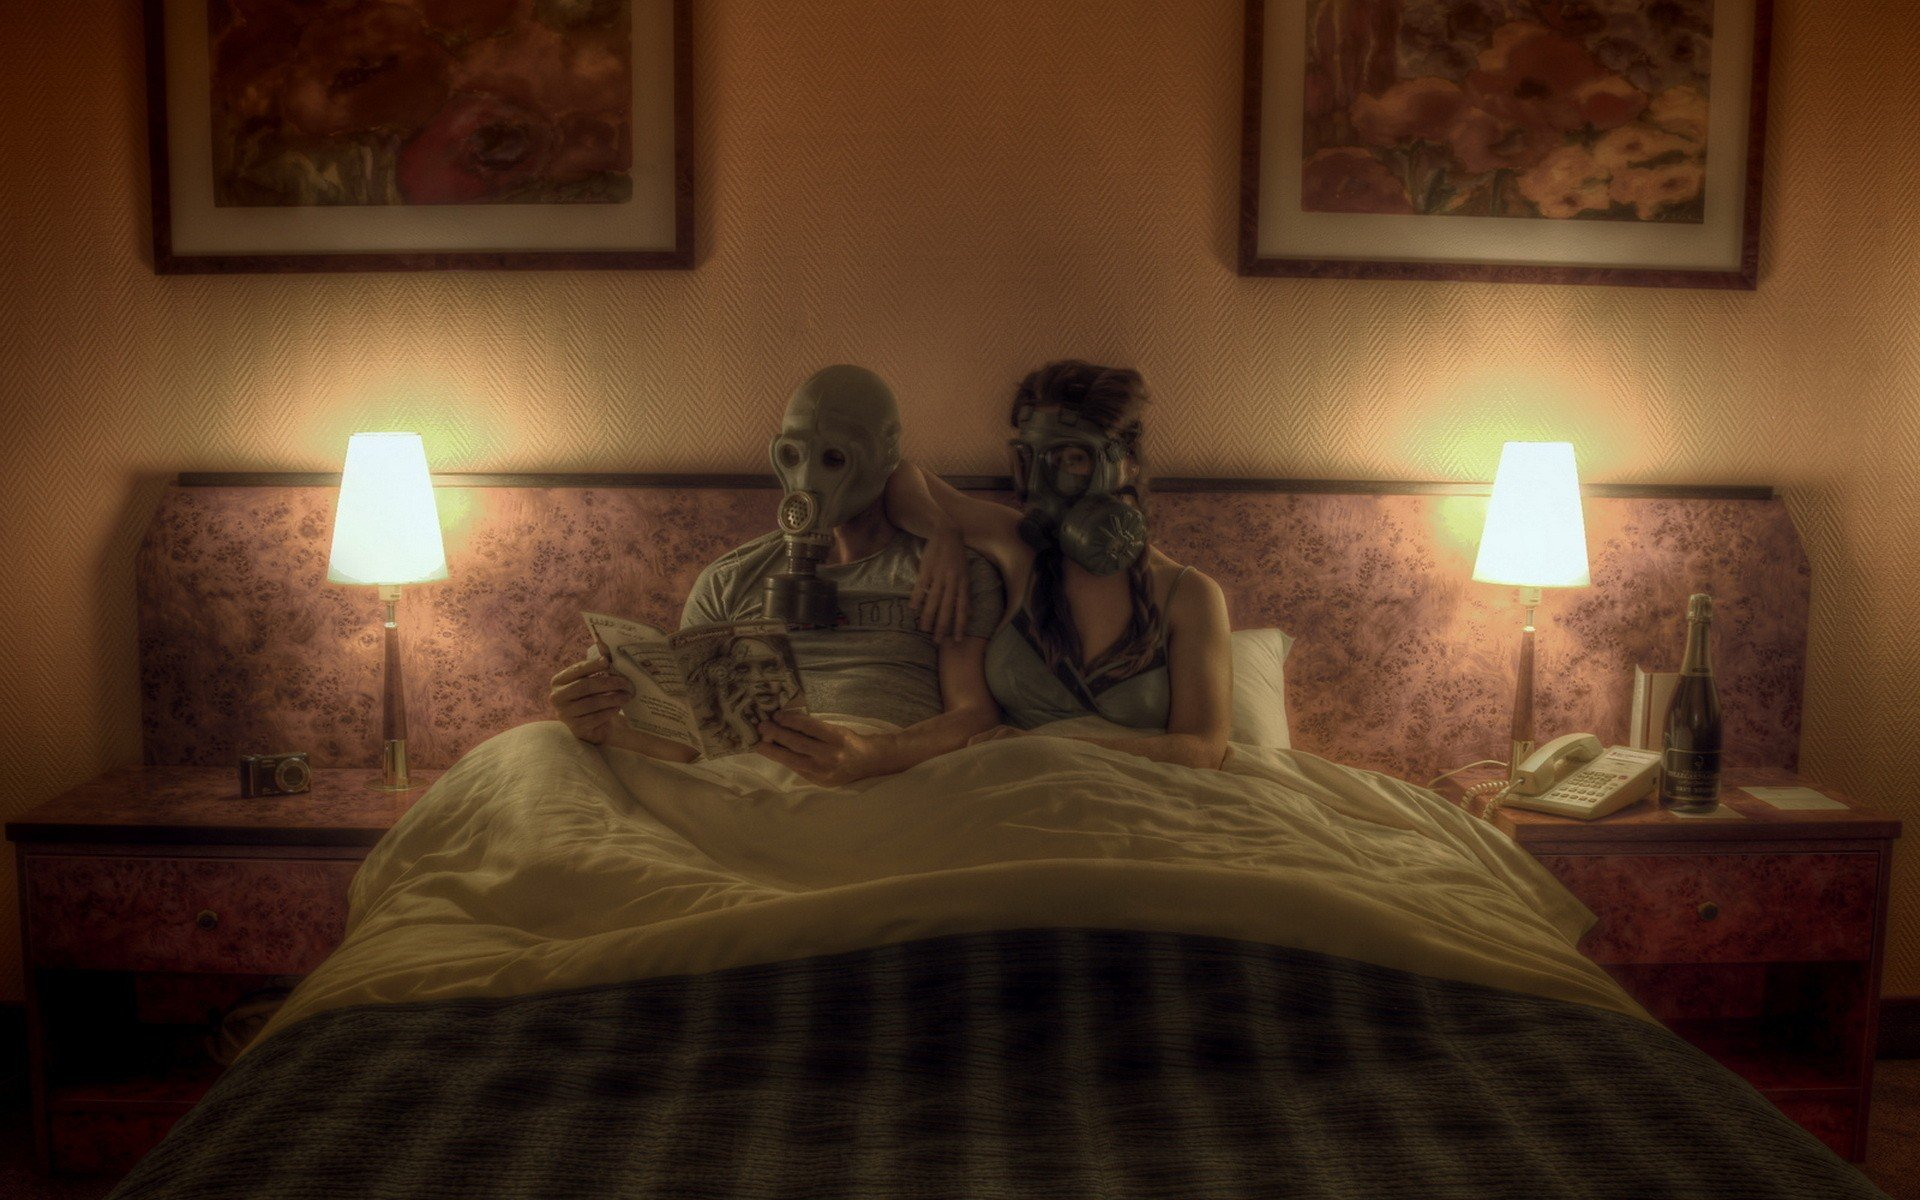 wallpaper for bedroom photo manipulation gas masks reading in bed 13768